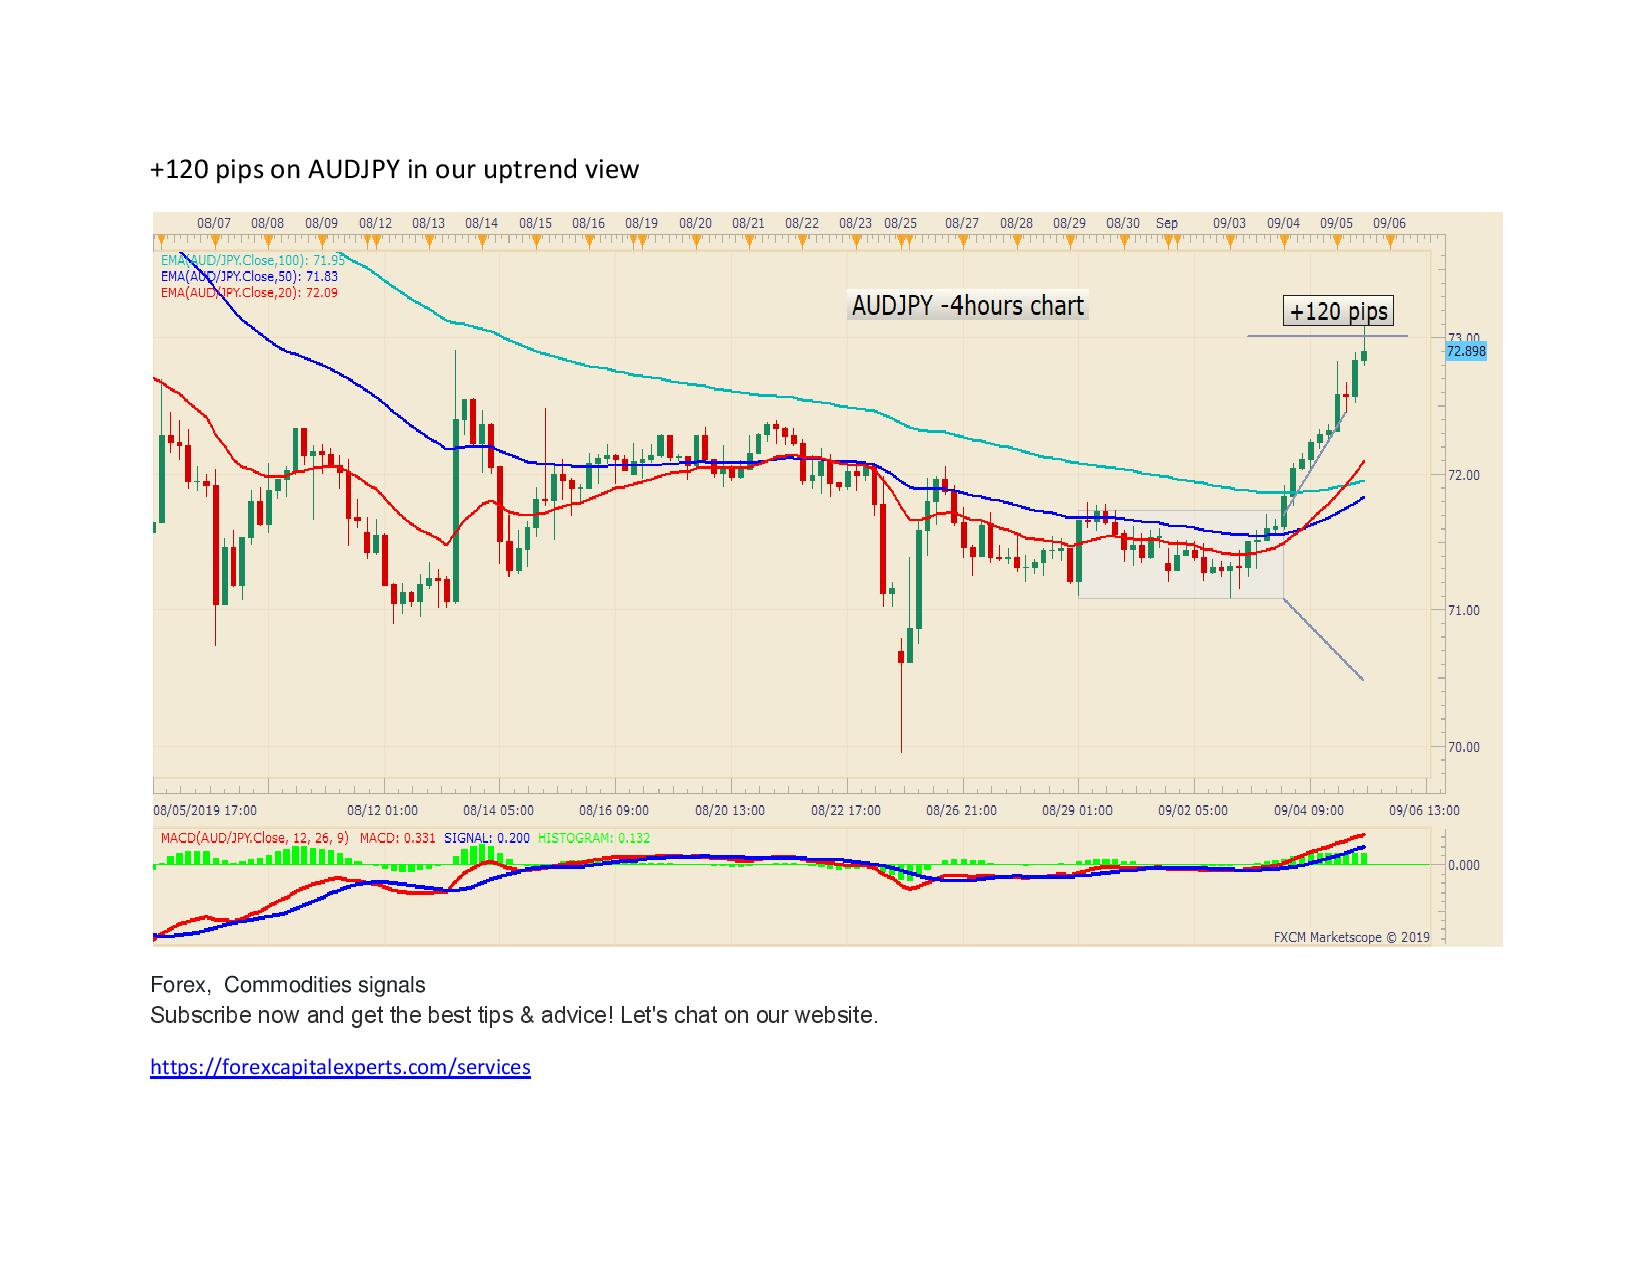 120 pips on AUDJPY in our uptrend view page 001